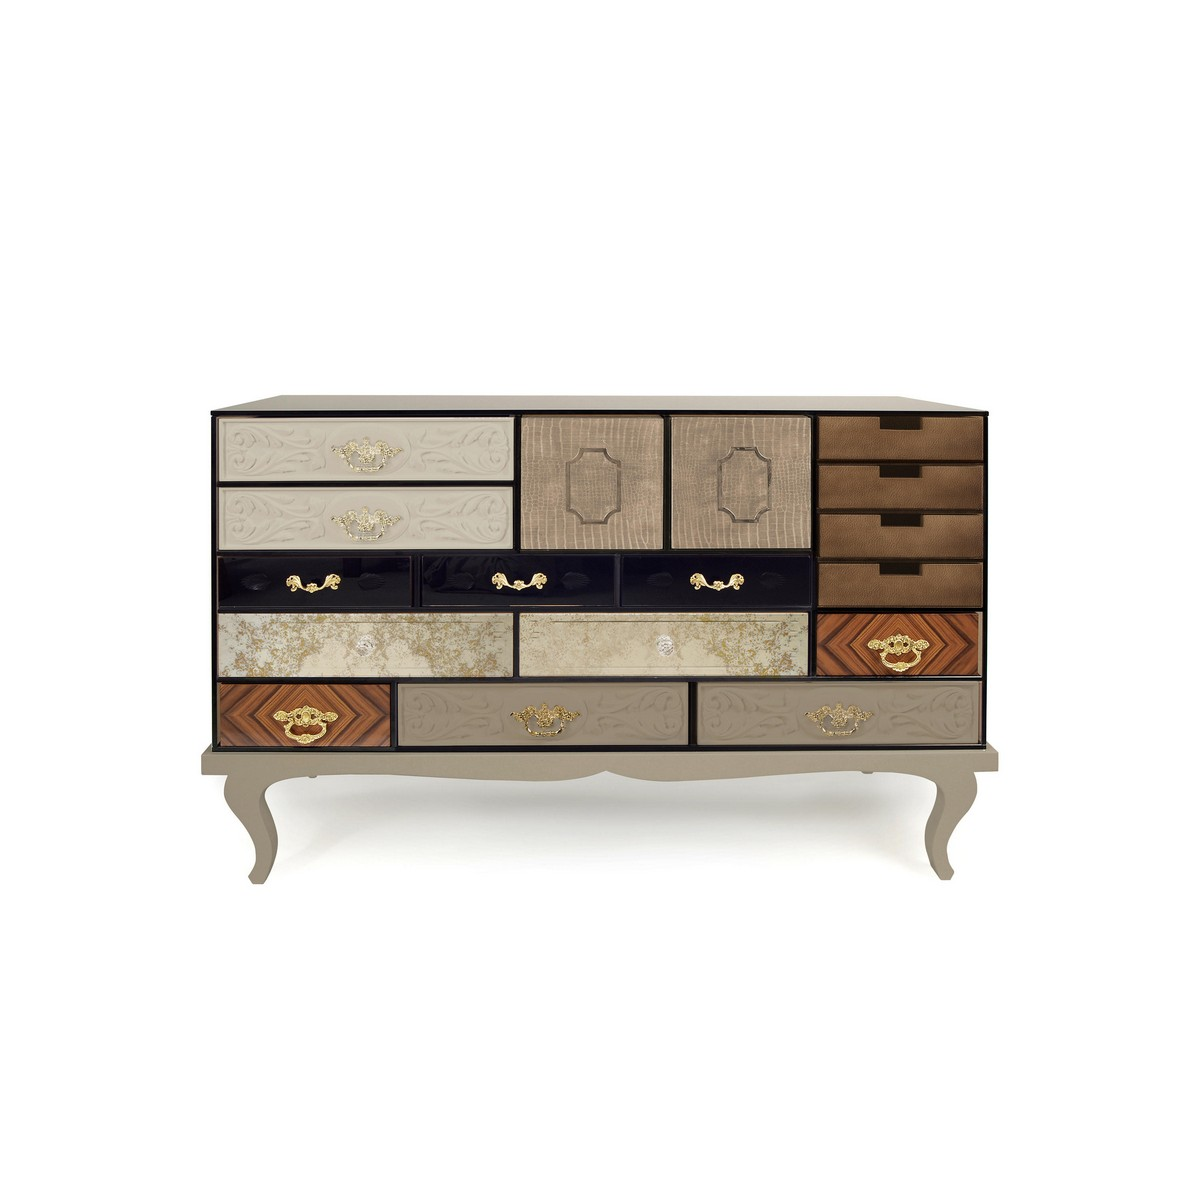 Covet House Stocklist: New Sideboard Entries